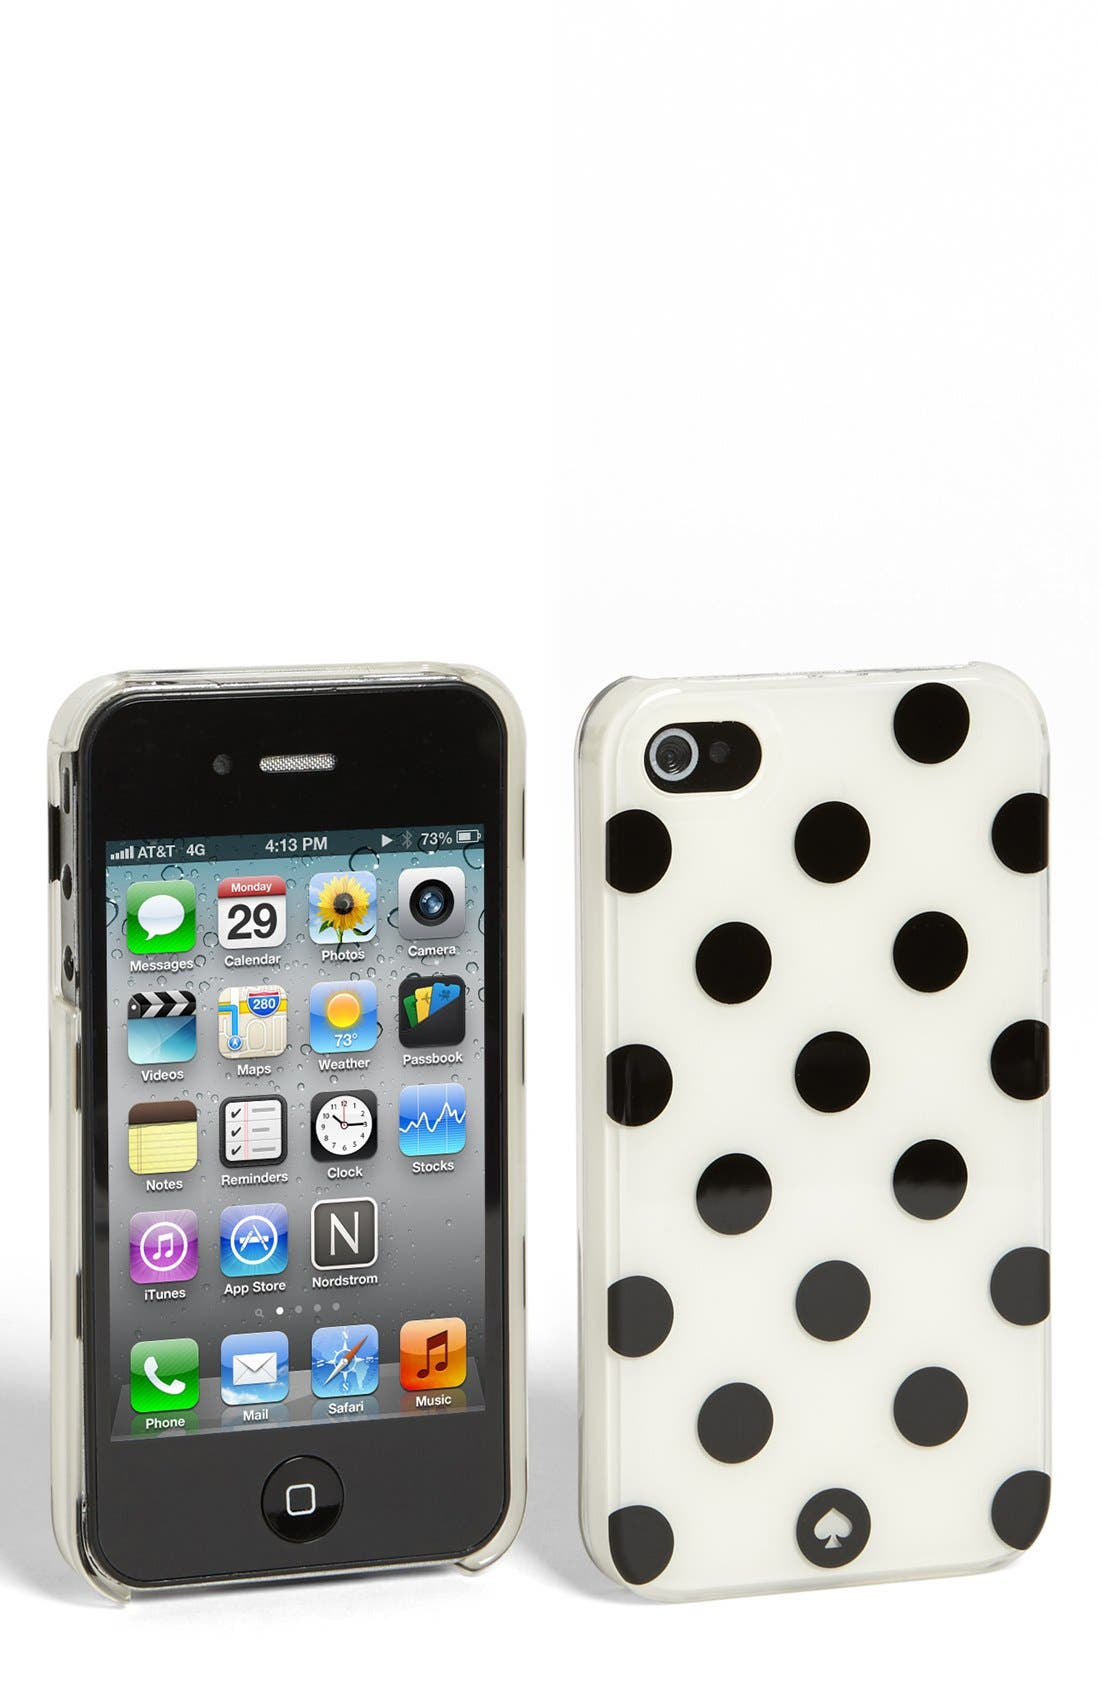 Main Image - kate spade new york 'le pavillion' iPhone 4 & 4s case